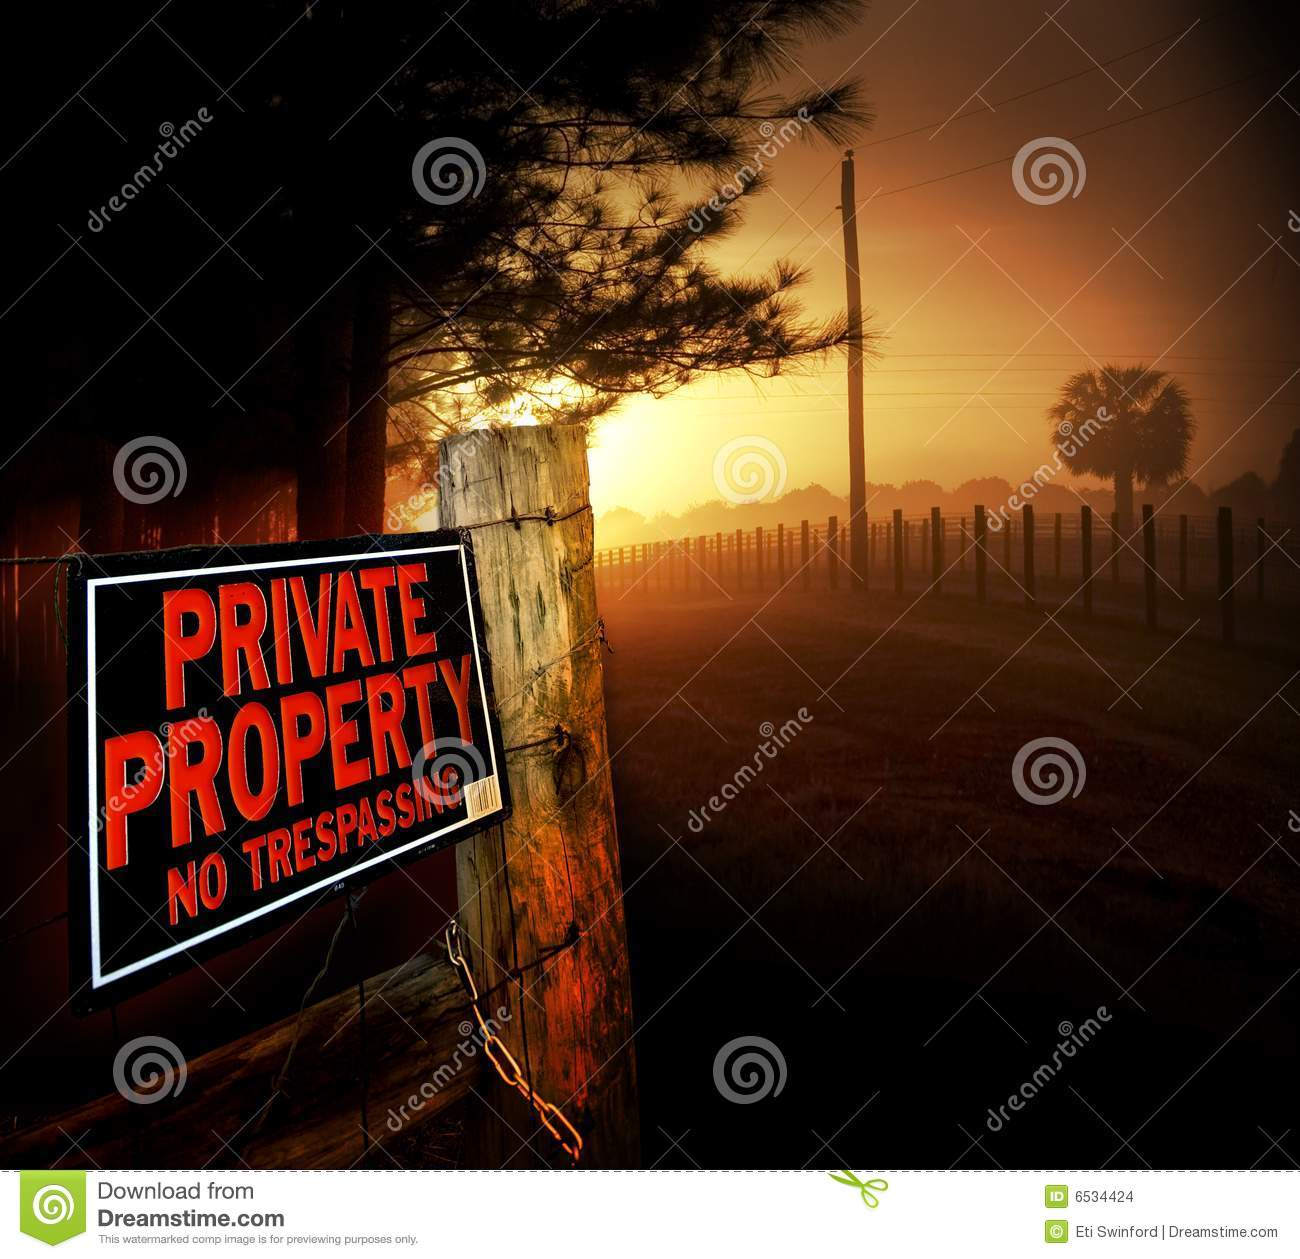 Private Property entrance